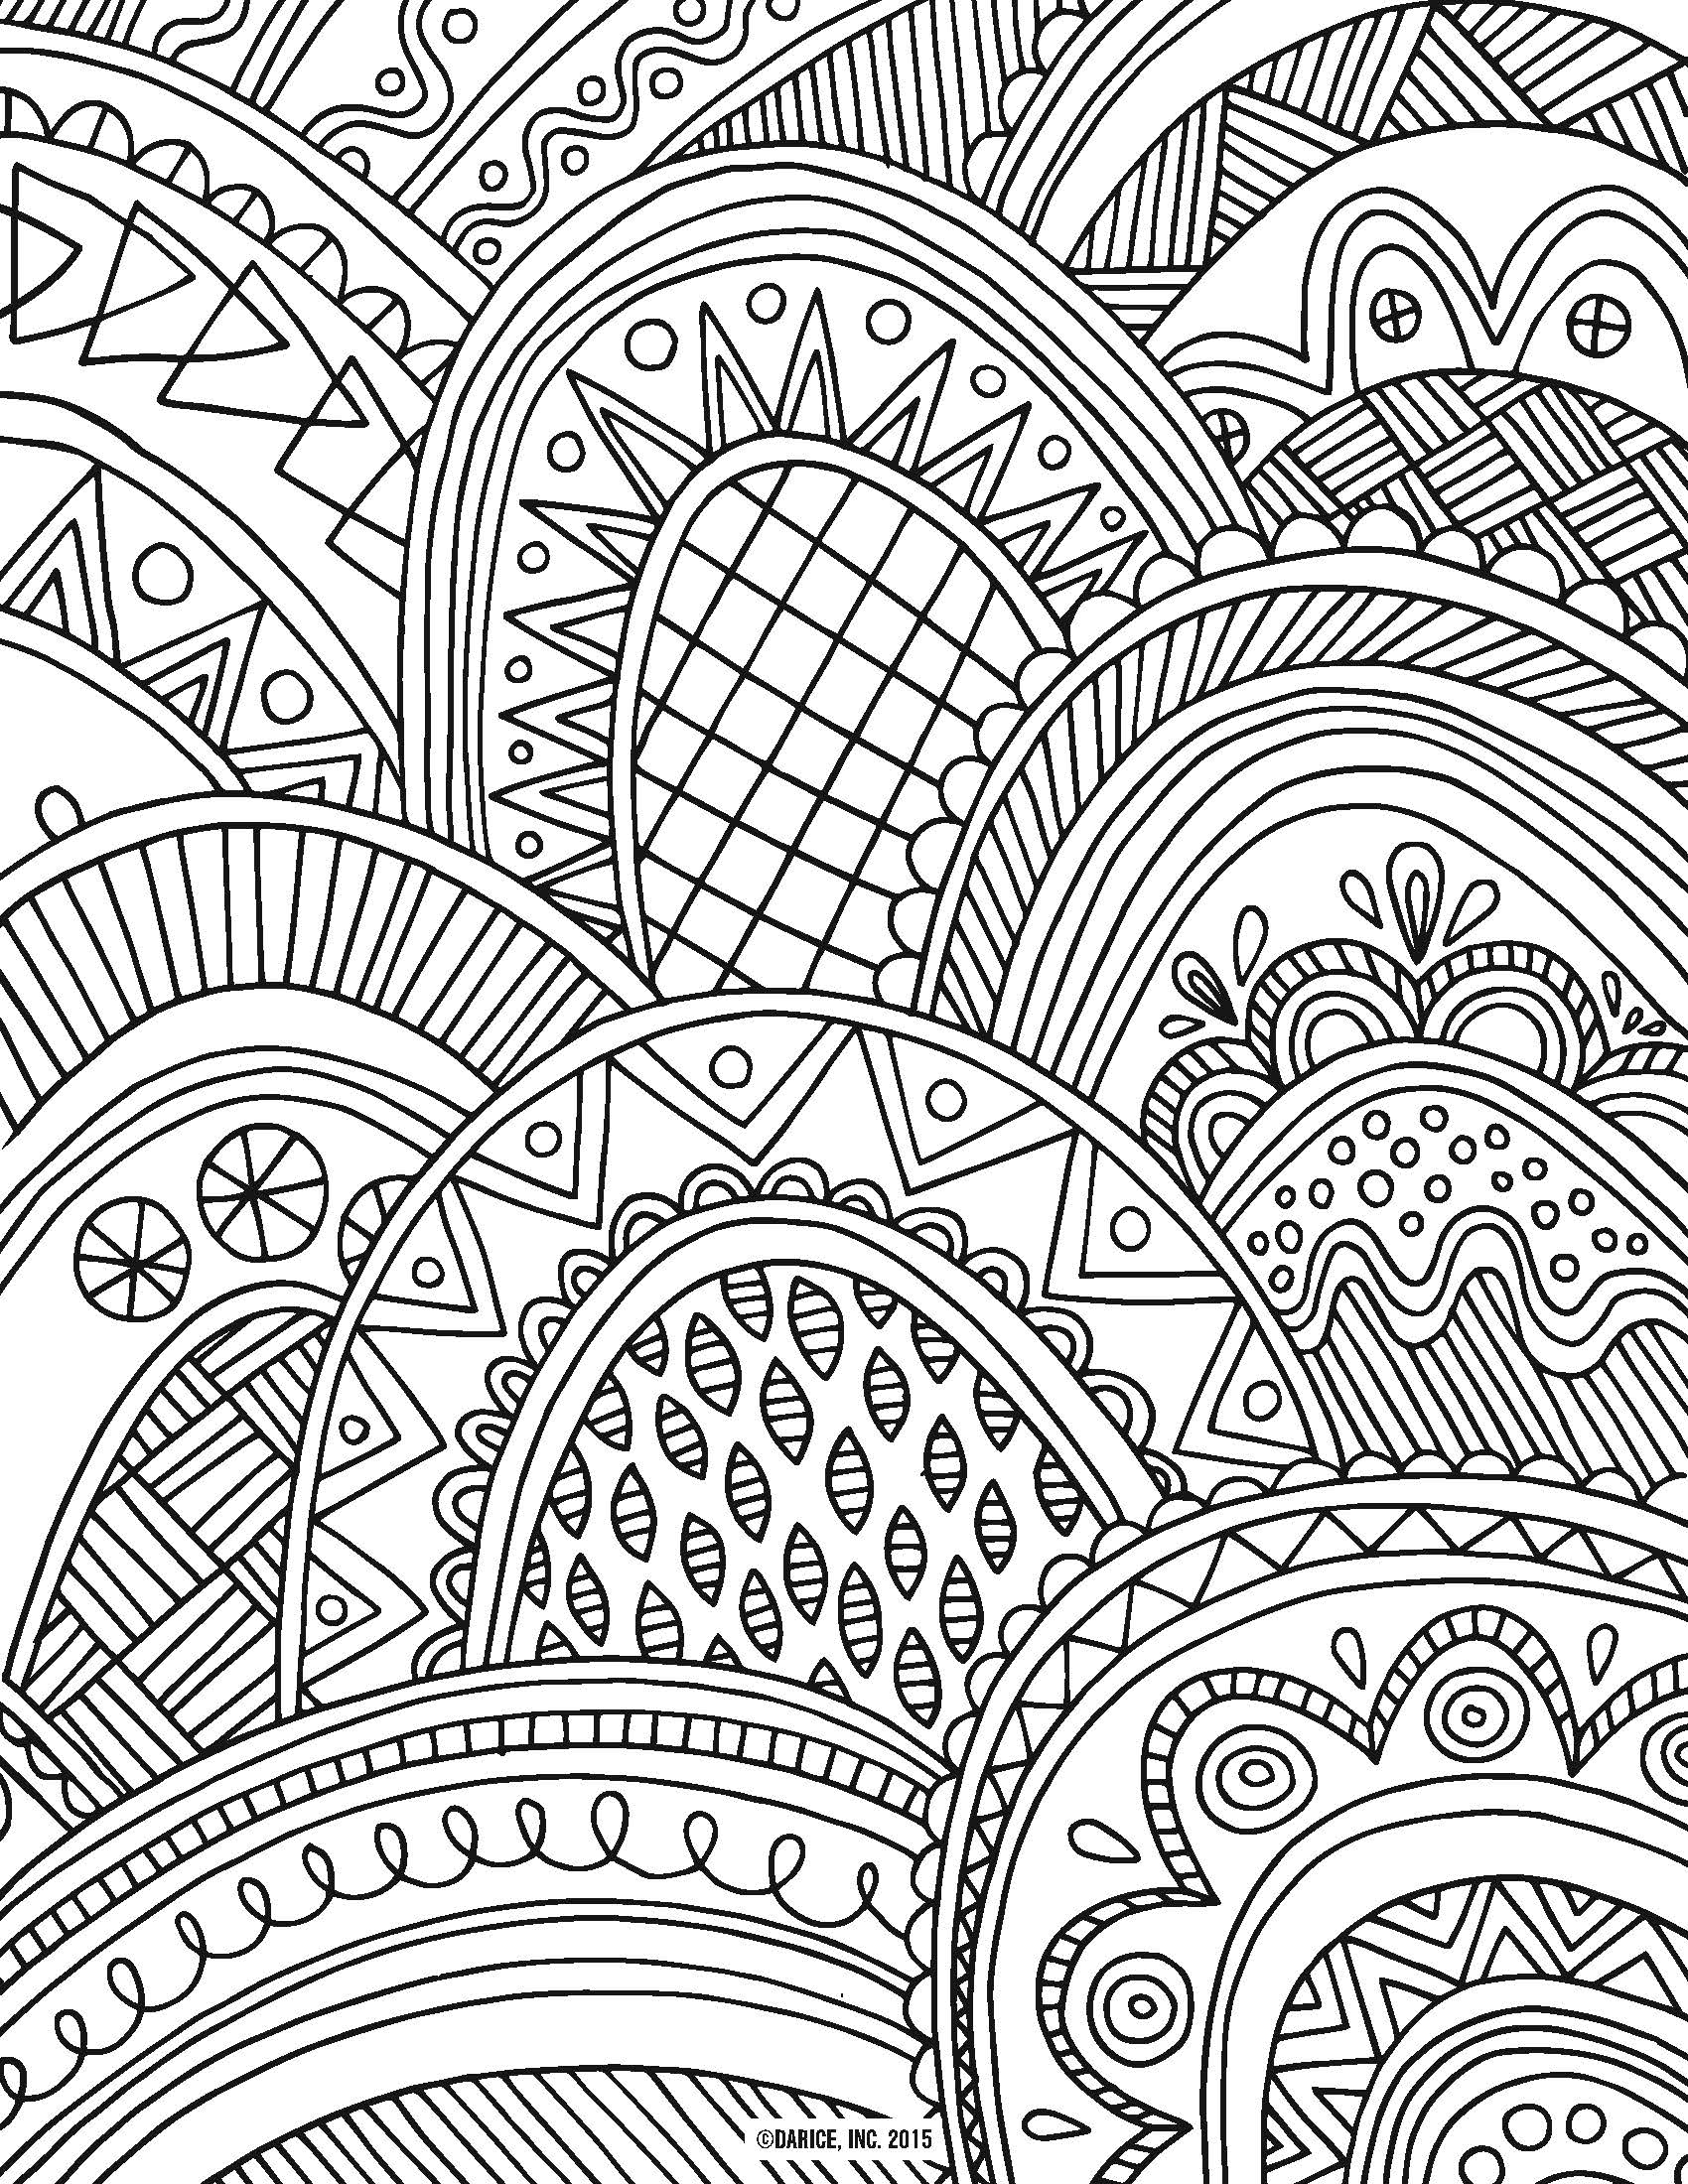 coloring worksheets for adults avocado coloring page at getcoloringscom free printable coloring for worksheets adults